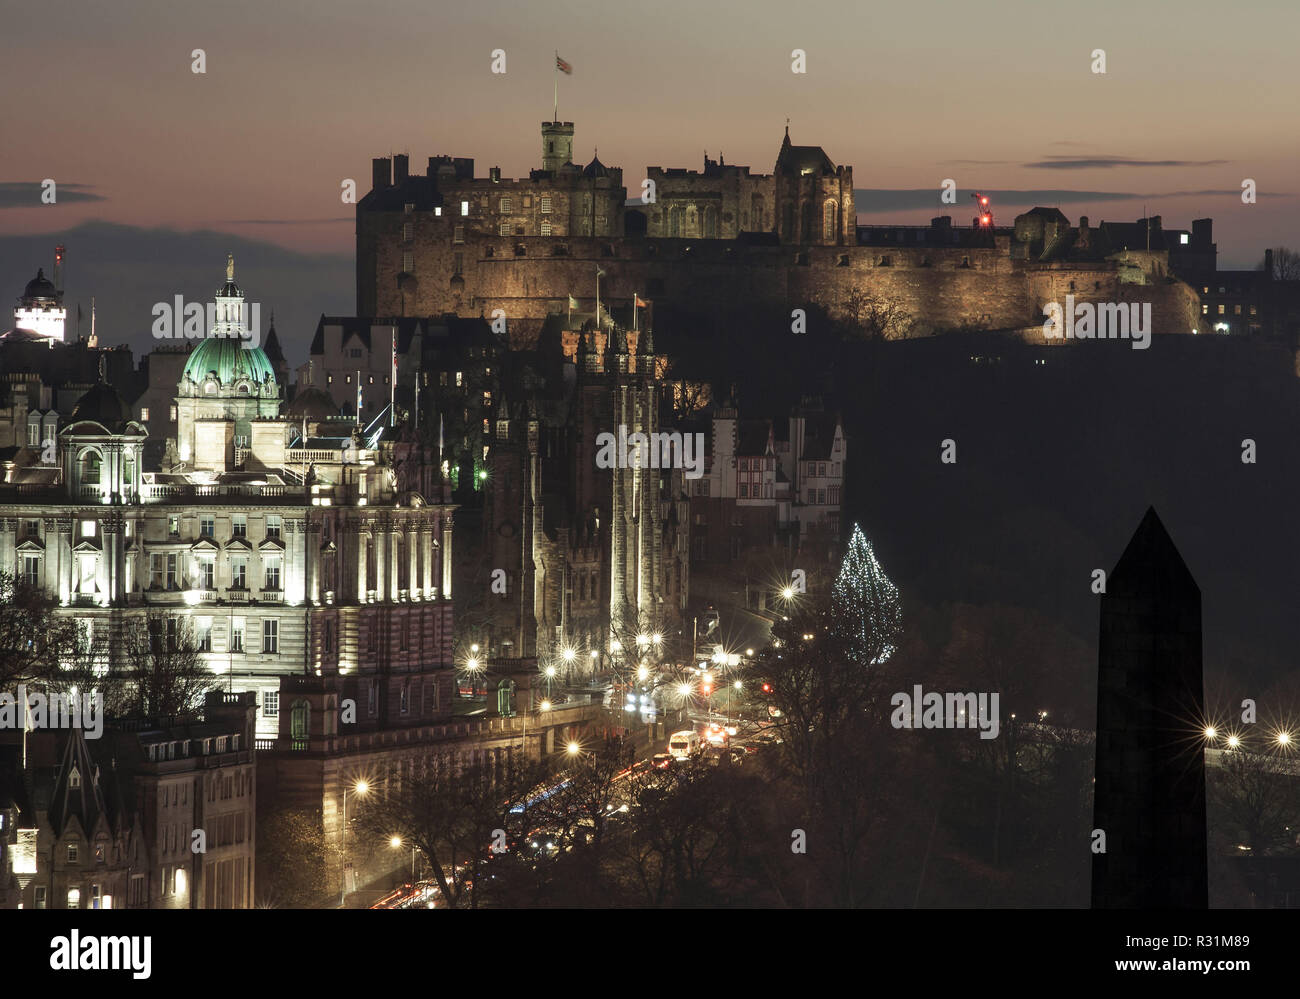 Edinburgh, Scotland. 11/18/18. View of Edinburgh's Castle at dusk from Calton Hill, with lights on and Christmas tree in the street Stock Photo